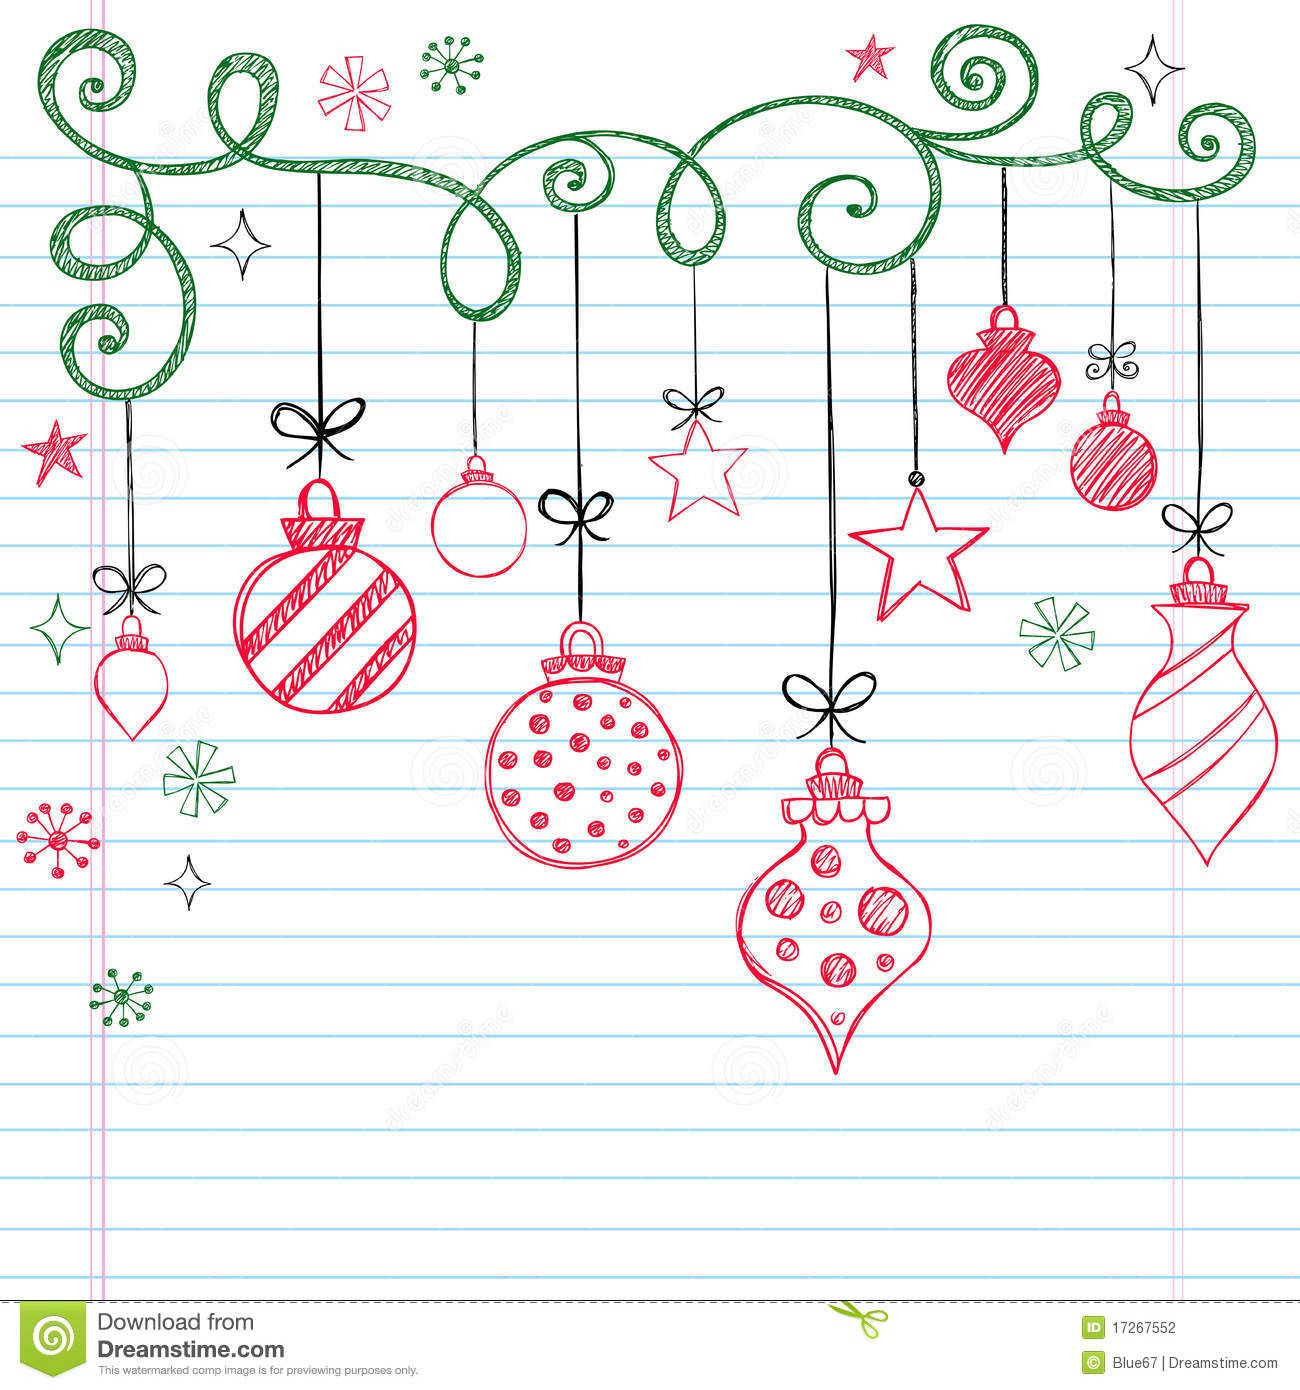 HandDrawn Sketchy Doodle Christmas Ornament simple